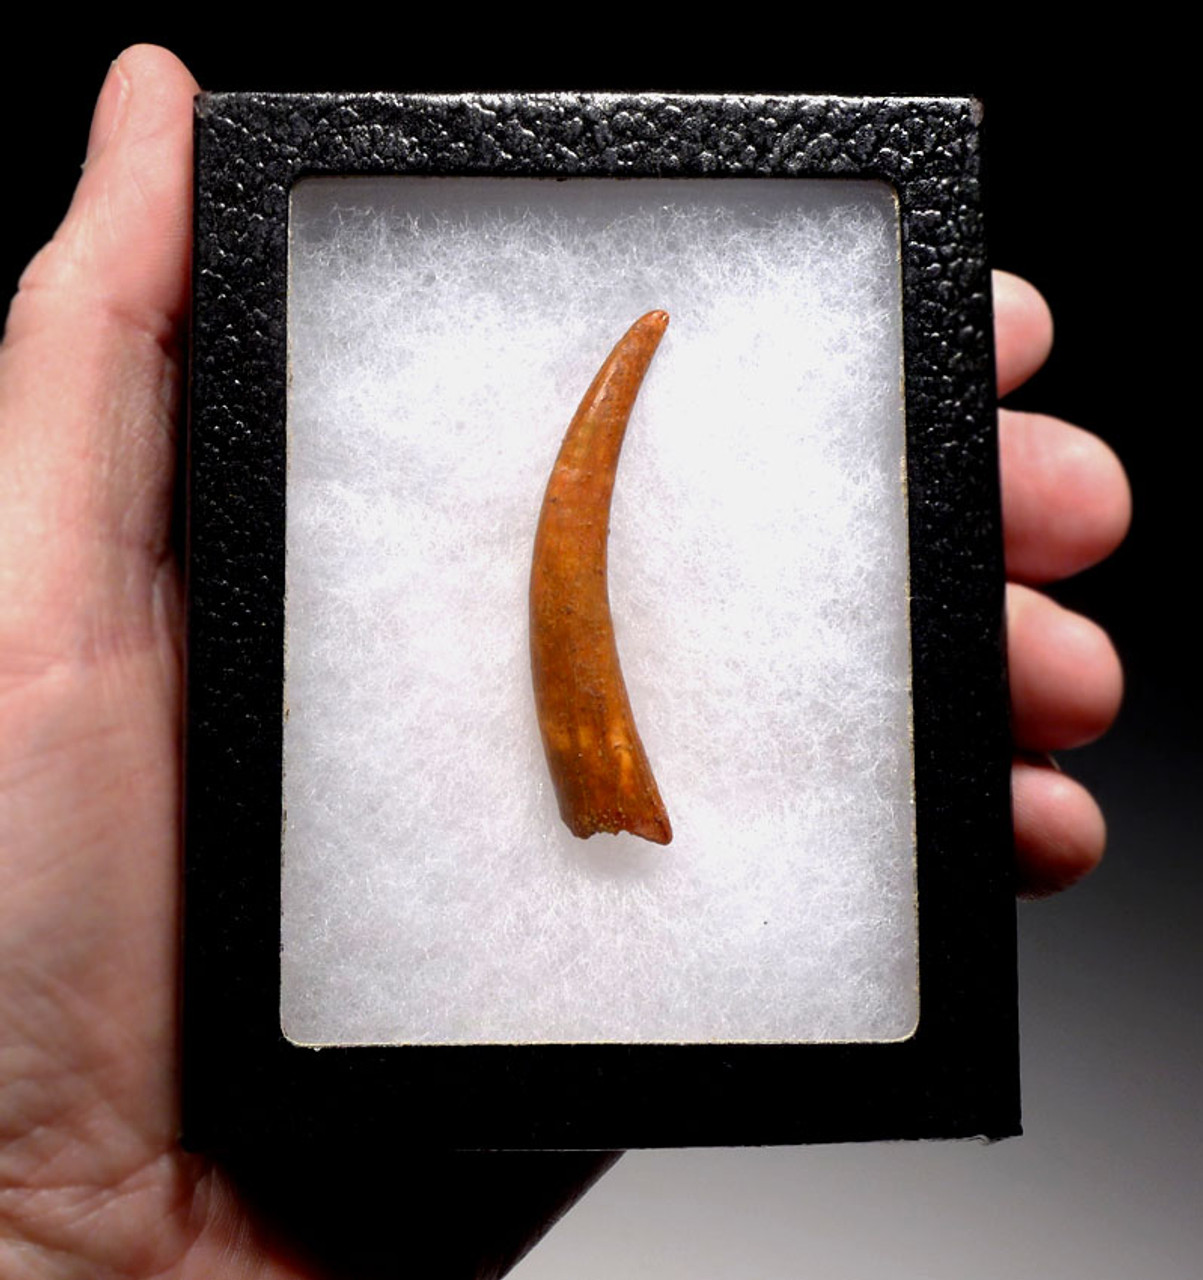 DT4-093 - OUR LARGEST EVER FINEST GRADE 2.5 INCH UNBROKEN PTERODACTYL PTEROSAUR TOOTH